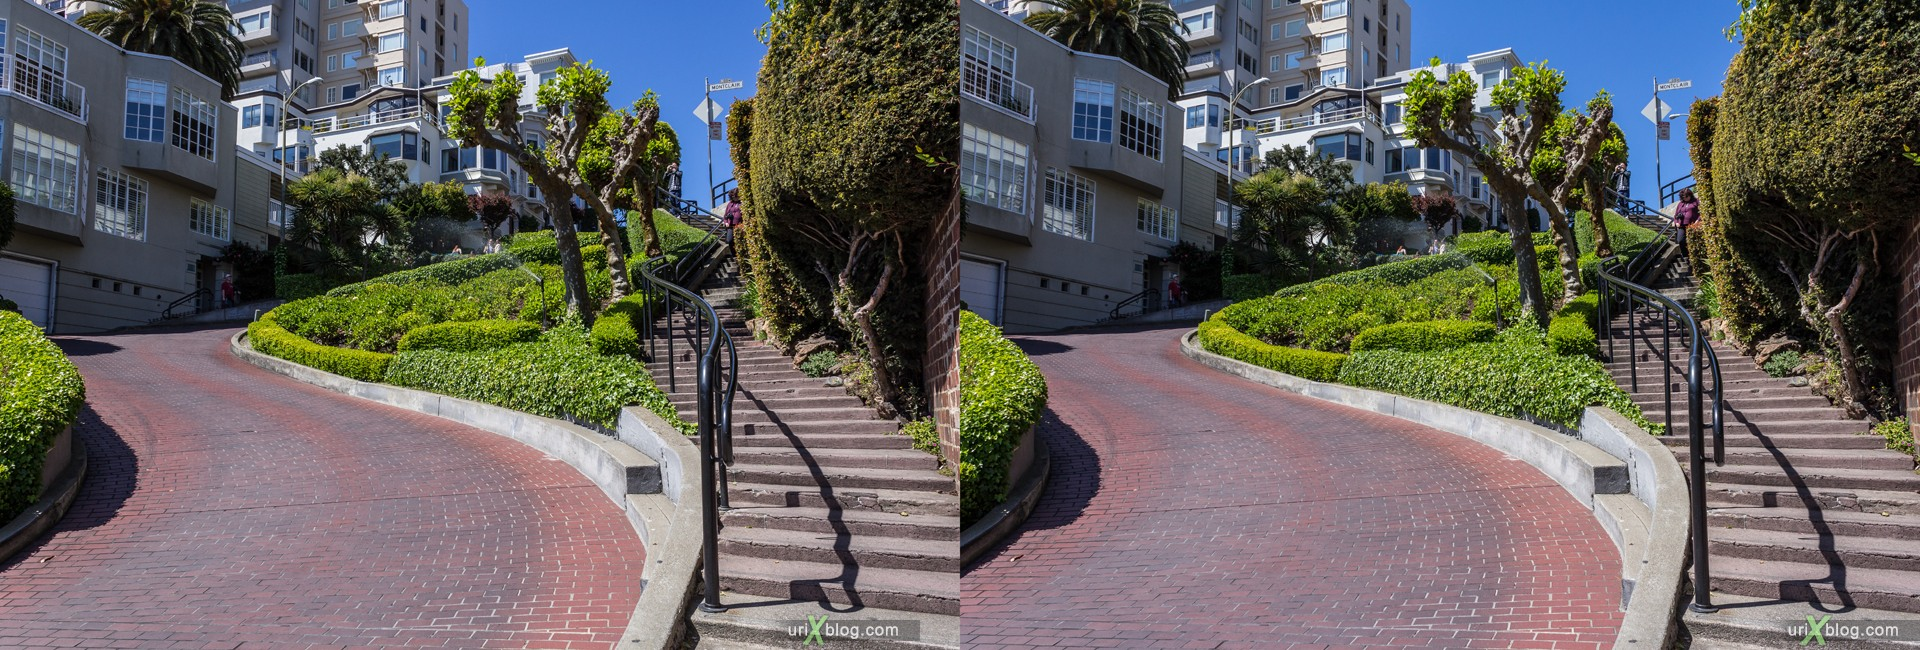 2013, USA, California, San Francisco, Russian hill, Lombard street, 3D, stereo pair, cross-eyed, crossview, cross view stereo pair, stereoscopic